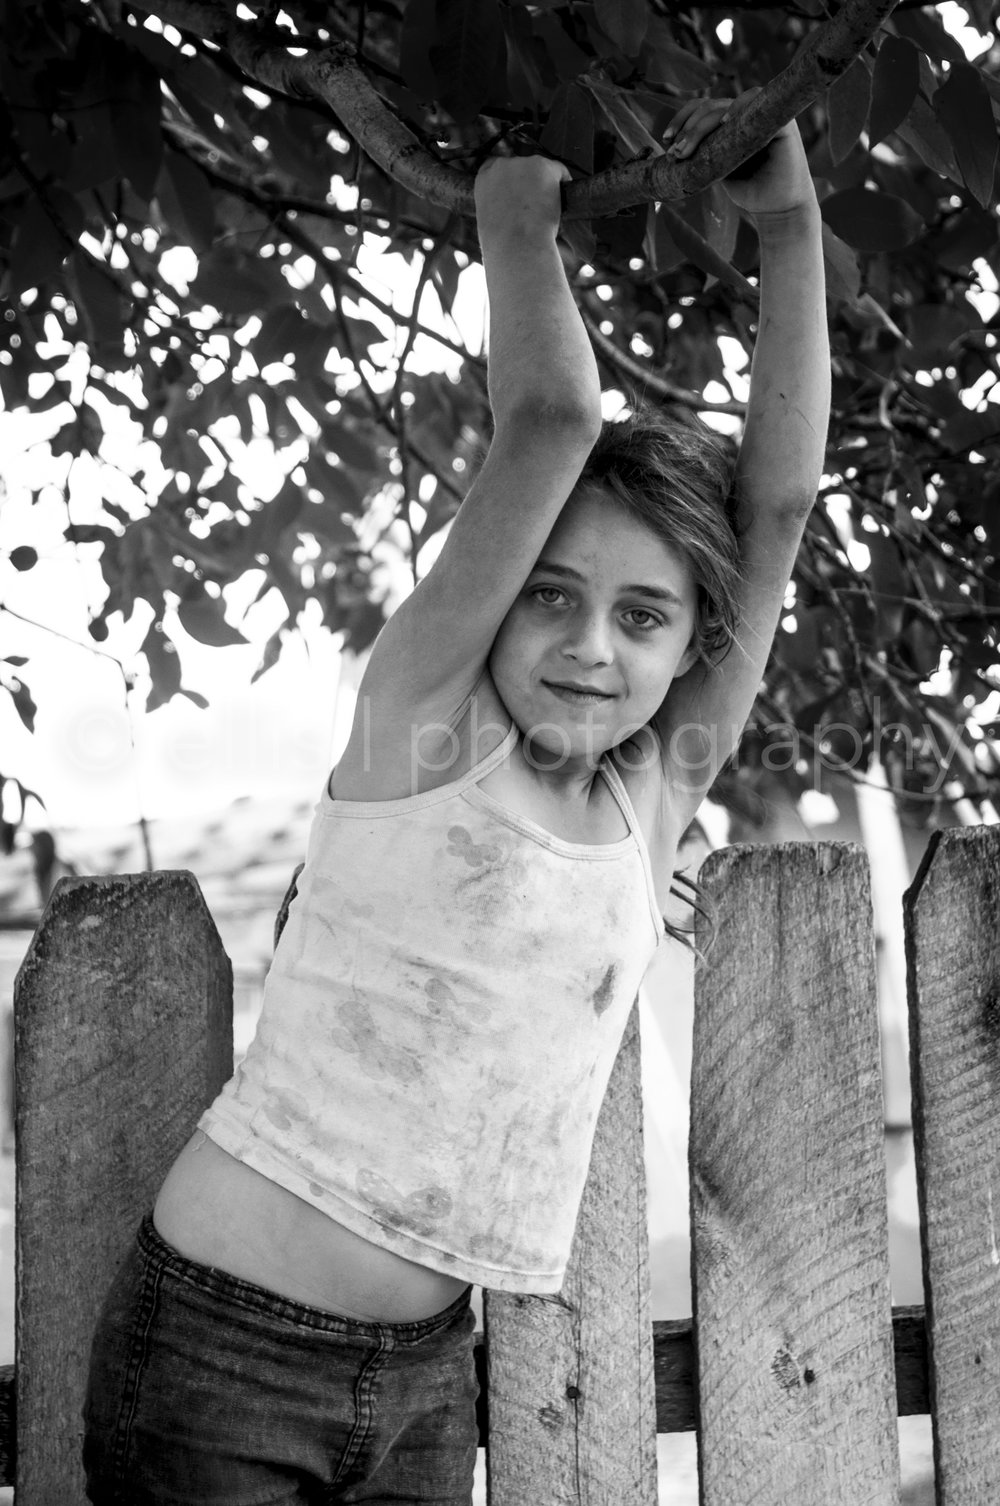 Ellis Peeters Photography took a daily life picture of a beautiful gipsy girl in Romania. Leaning against a fence and holding on to a branch of a tree. Portraits of a Romanian Family.